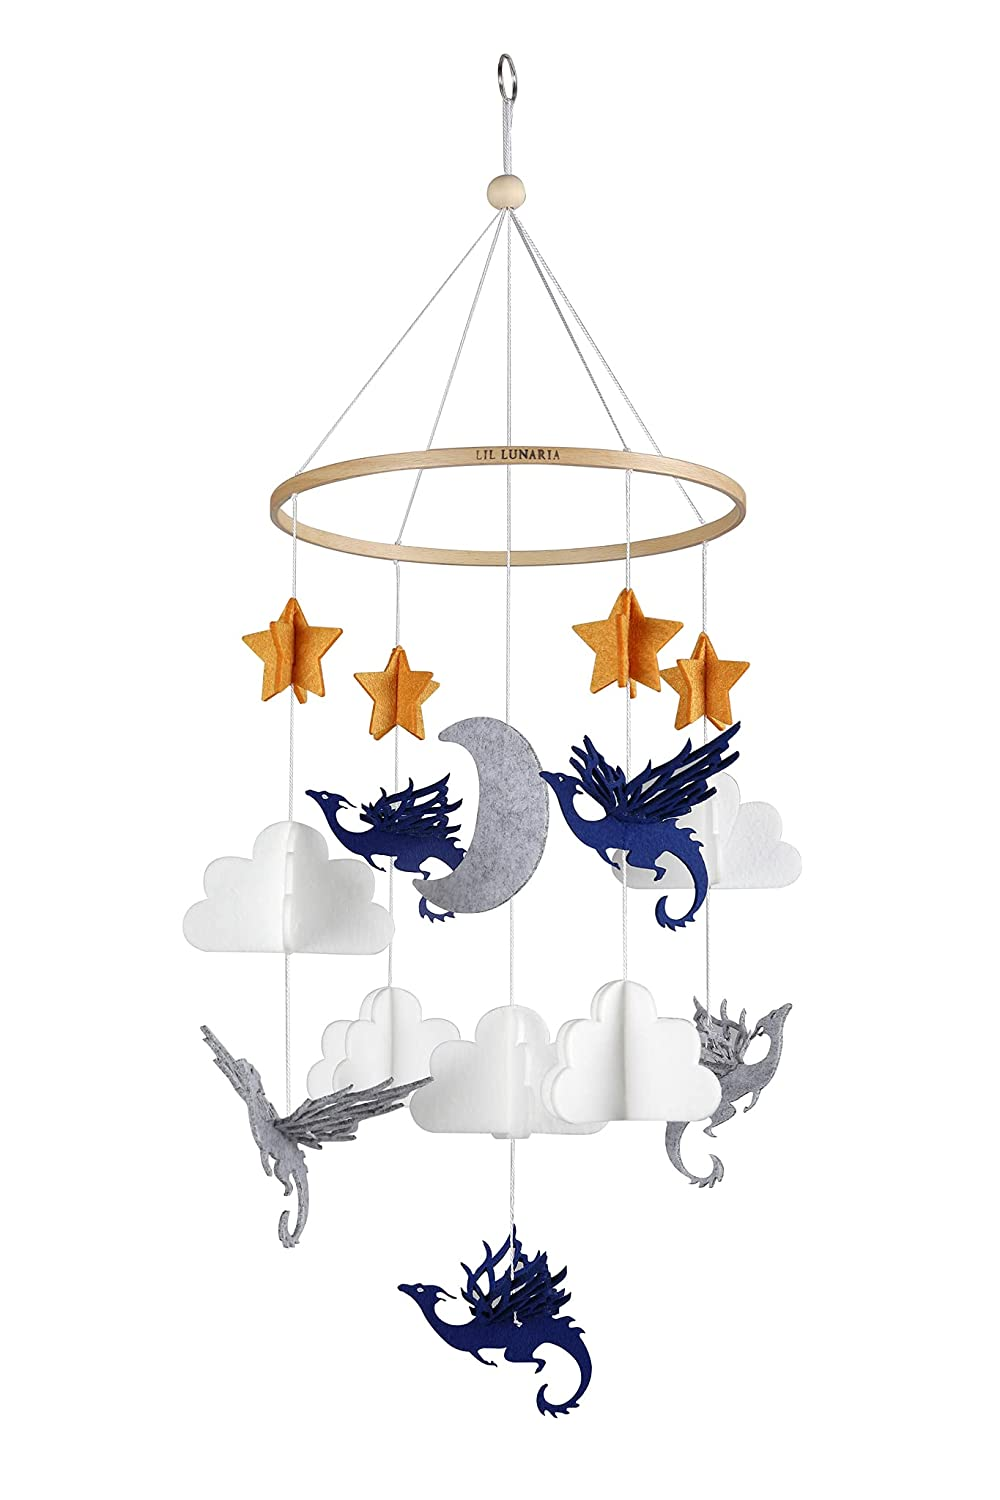 Baby Crib Mobile for Boys and San Francisco Mall Nurse Shower Girls: Gifts Max 79% OFF Set